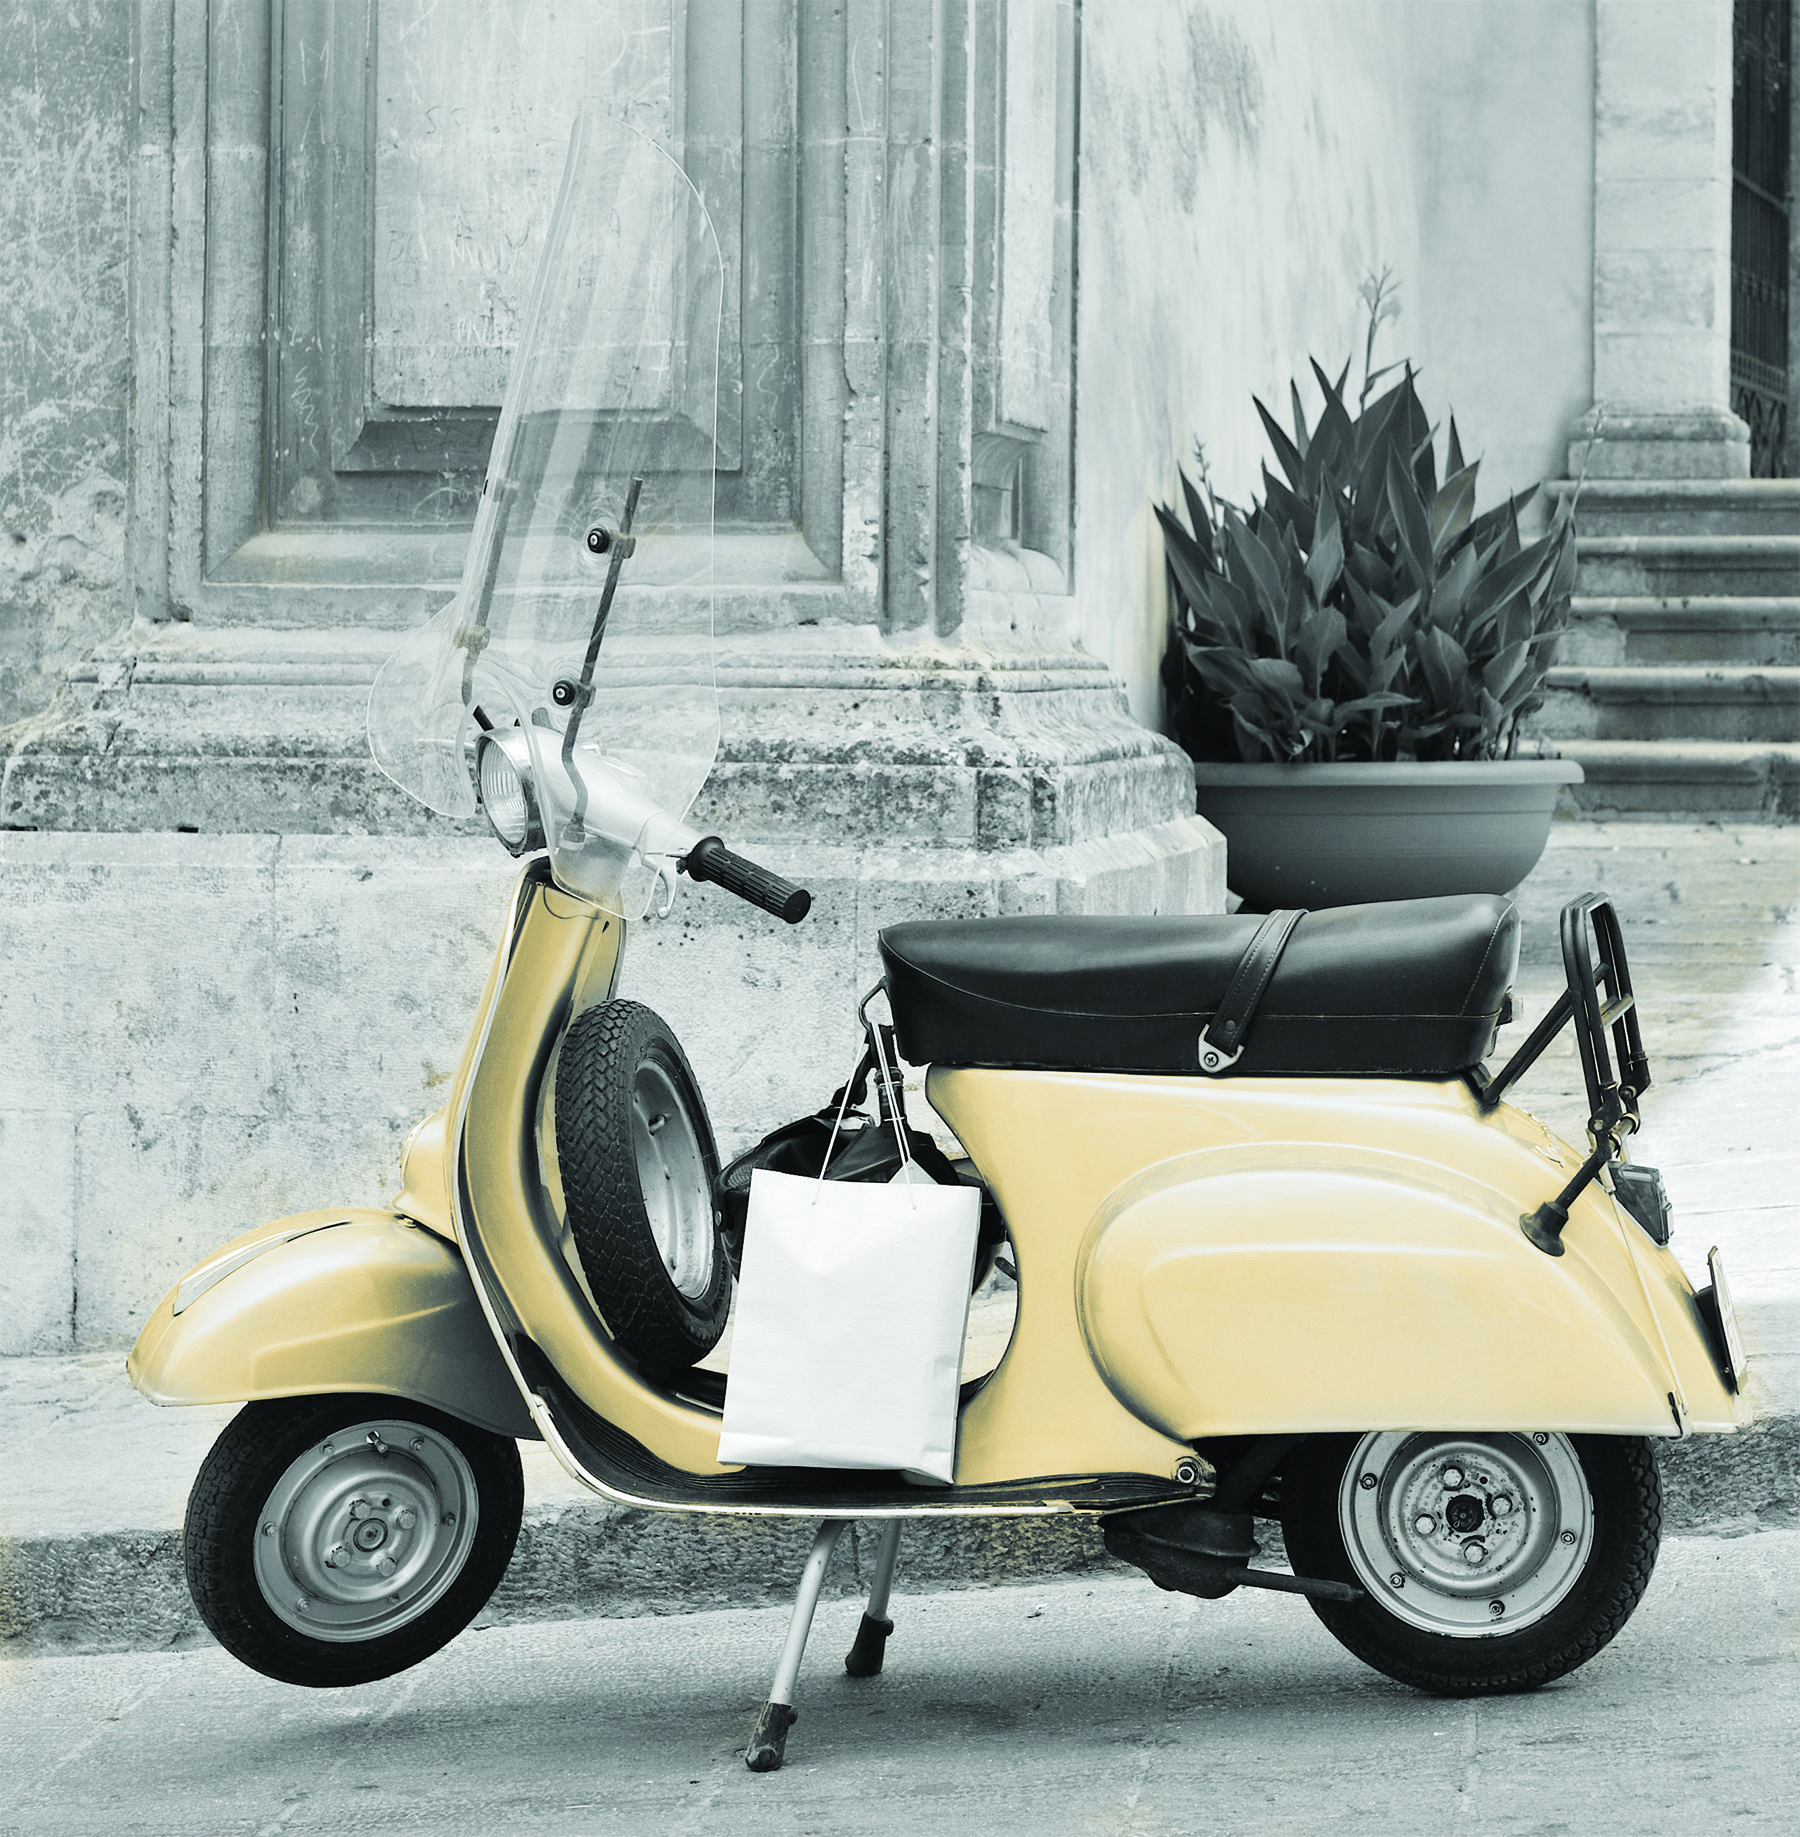 Vintage Italian Scooter #Travel